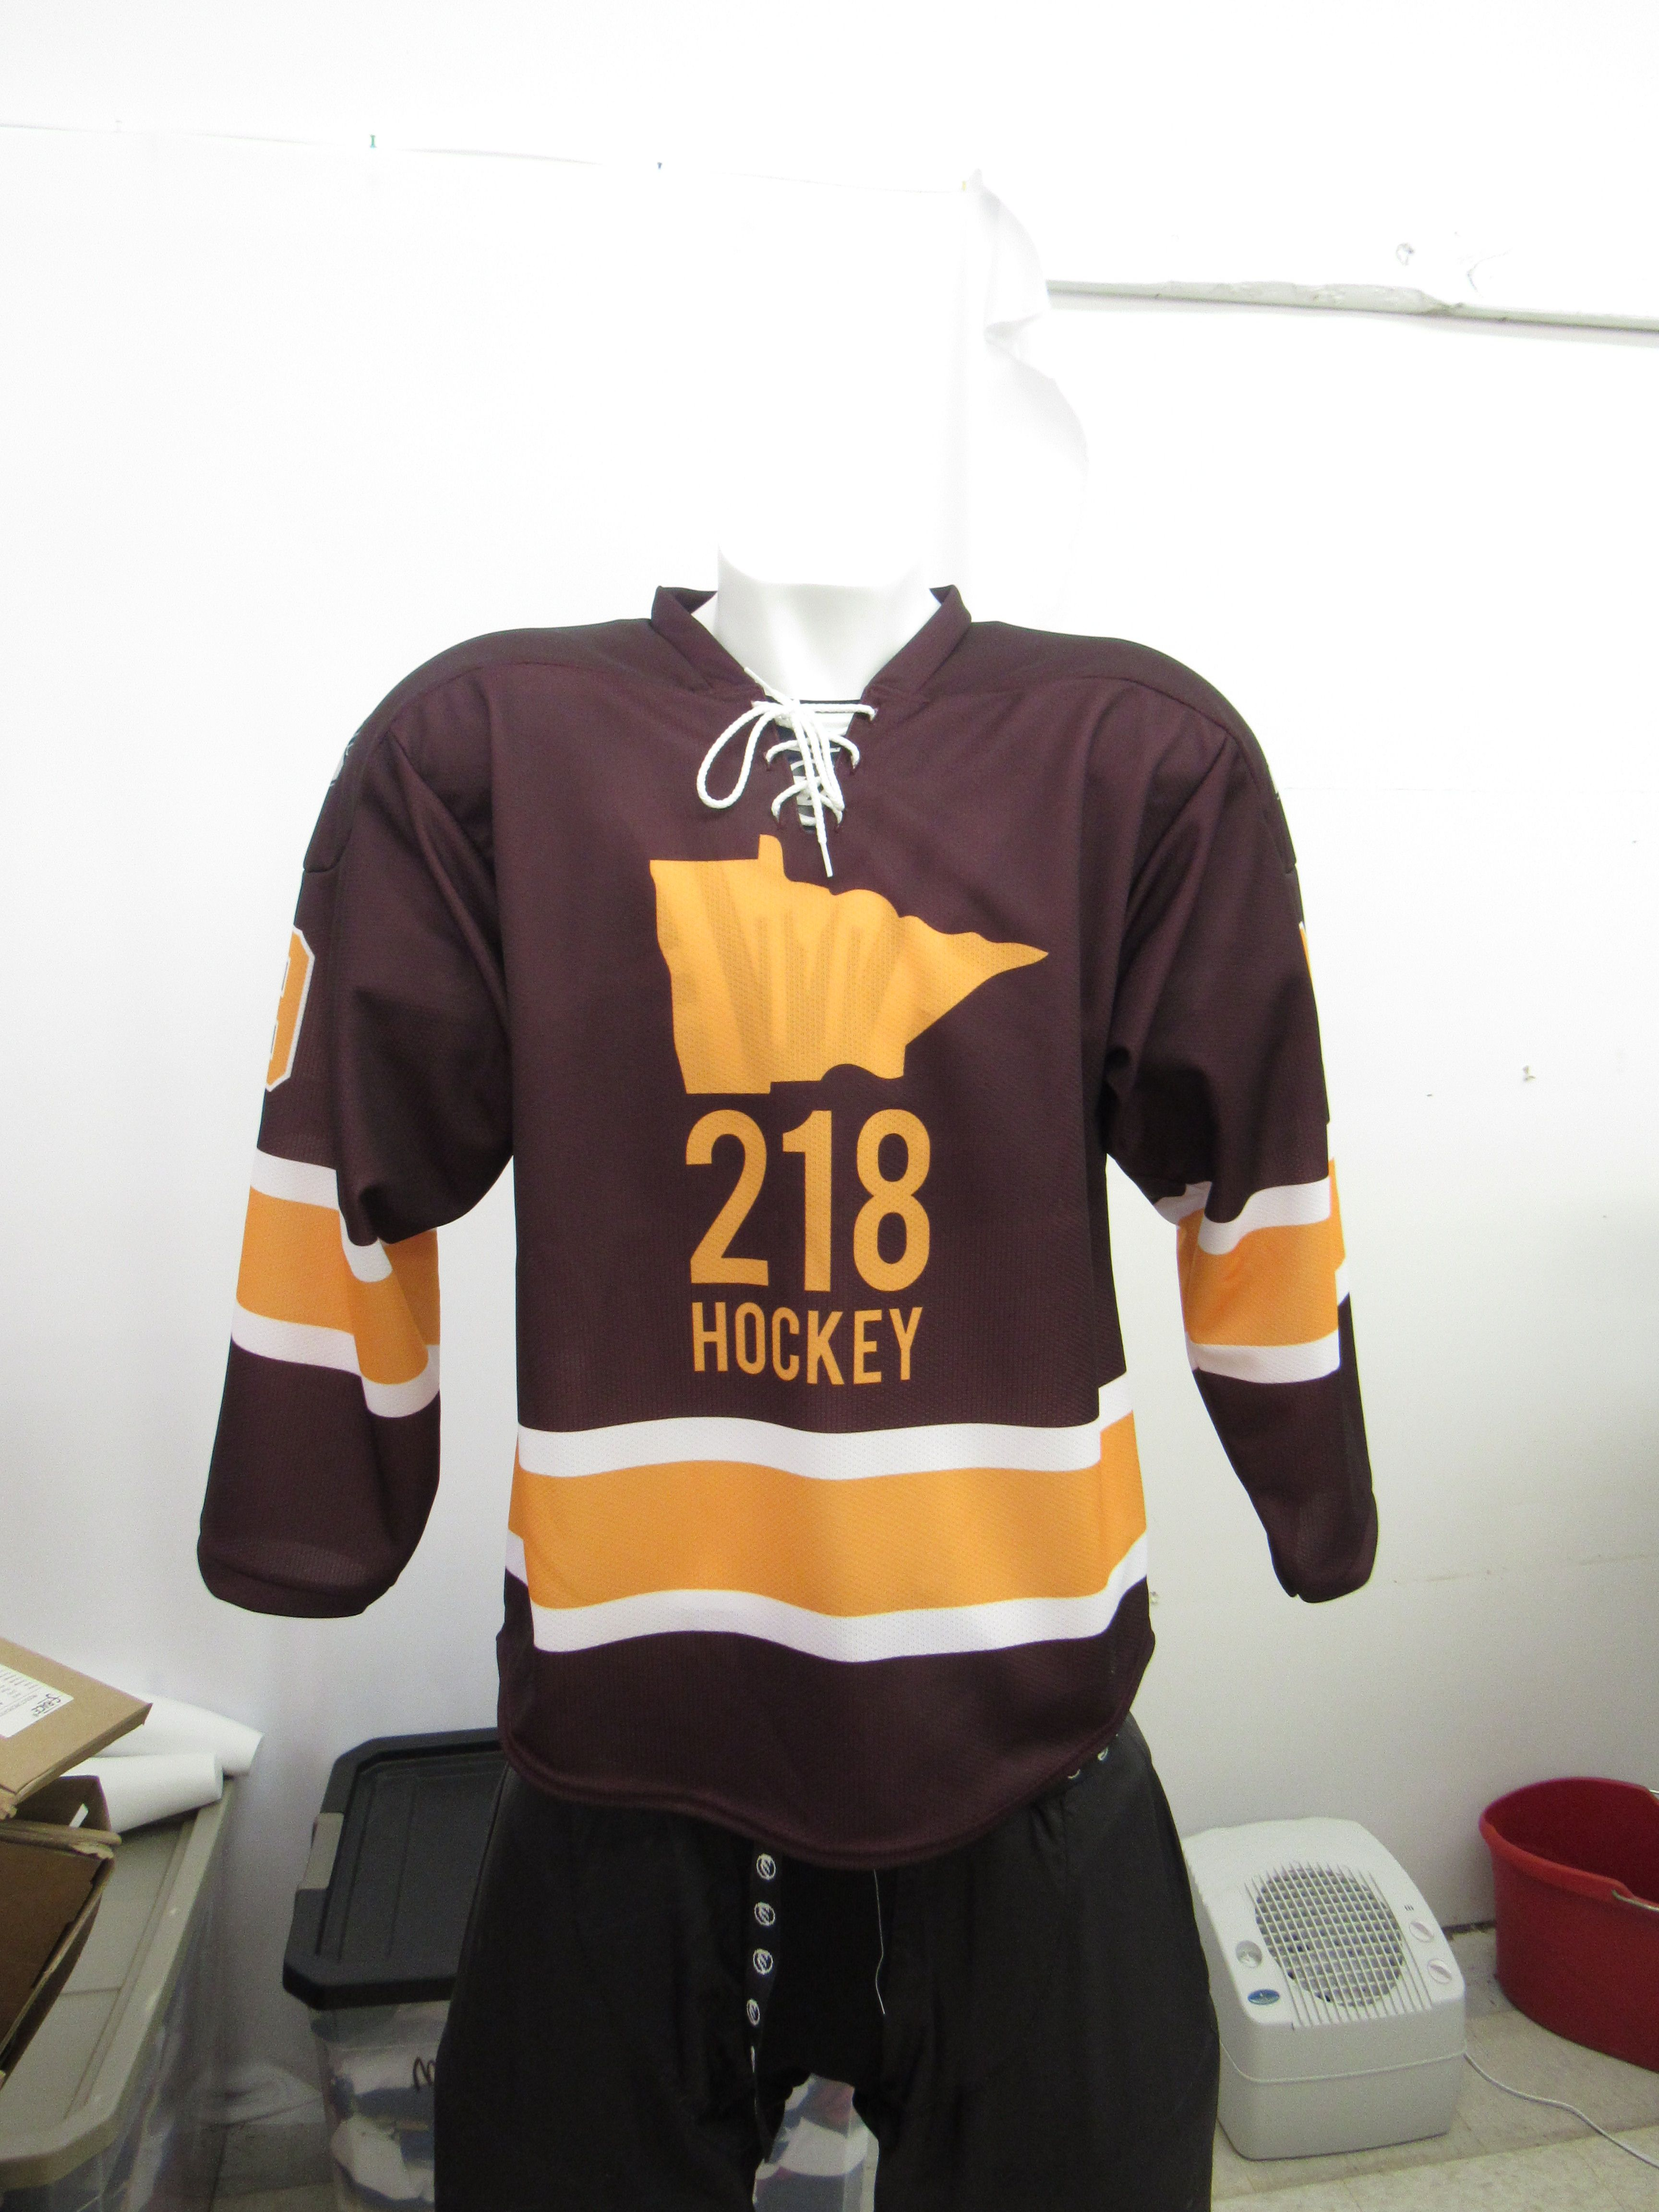 Sublimated 218 Hockey jerseys. Proudly made in Minnesota ... 25c907d8e9bc6